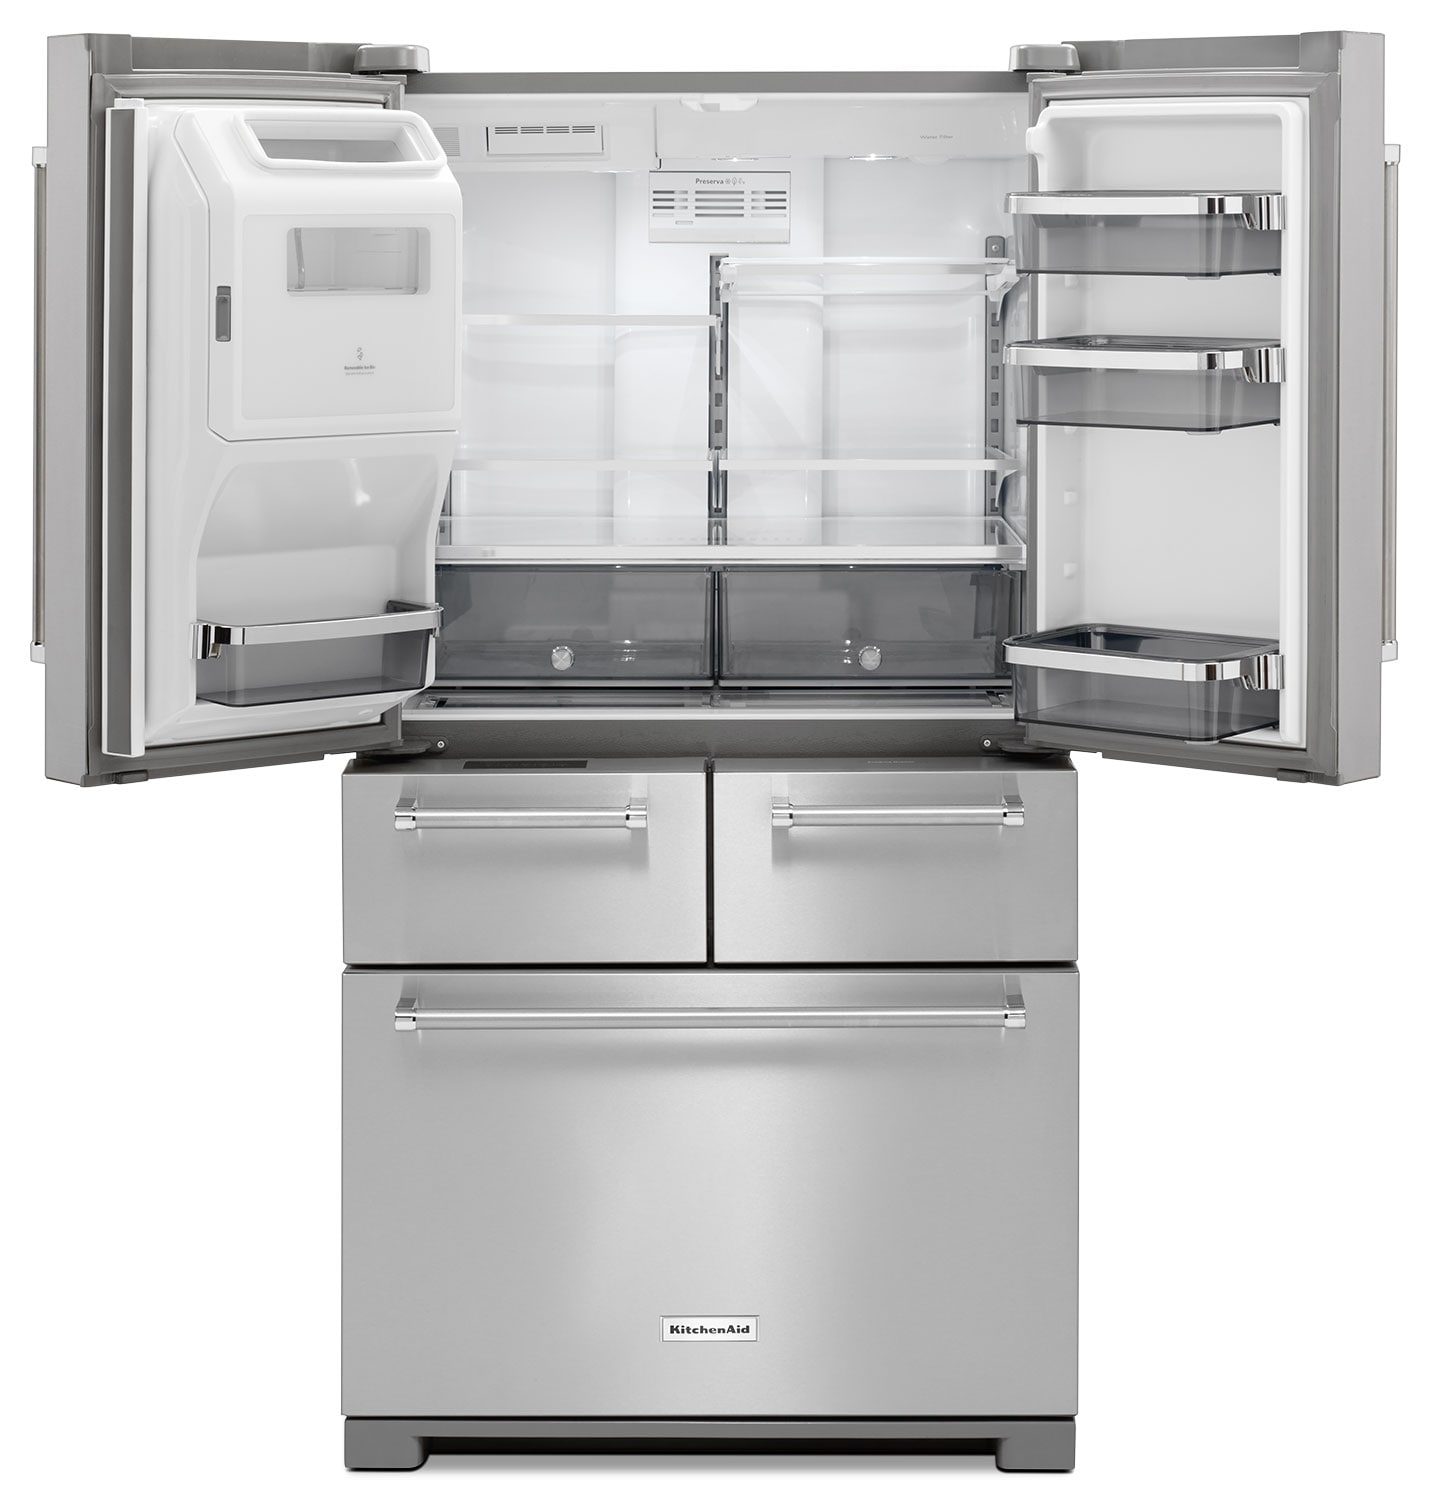 KitchenAid Stainless Steel French Door Refrigerator (25.8